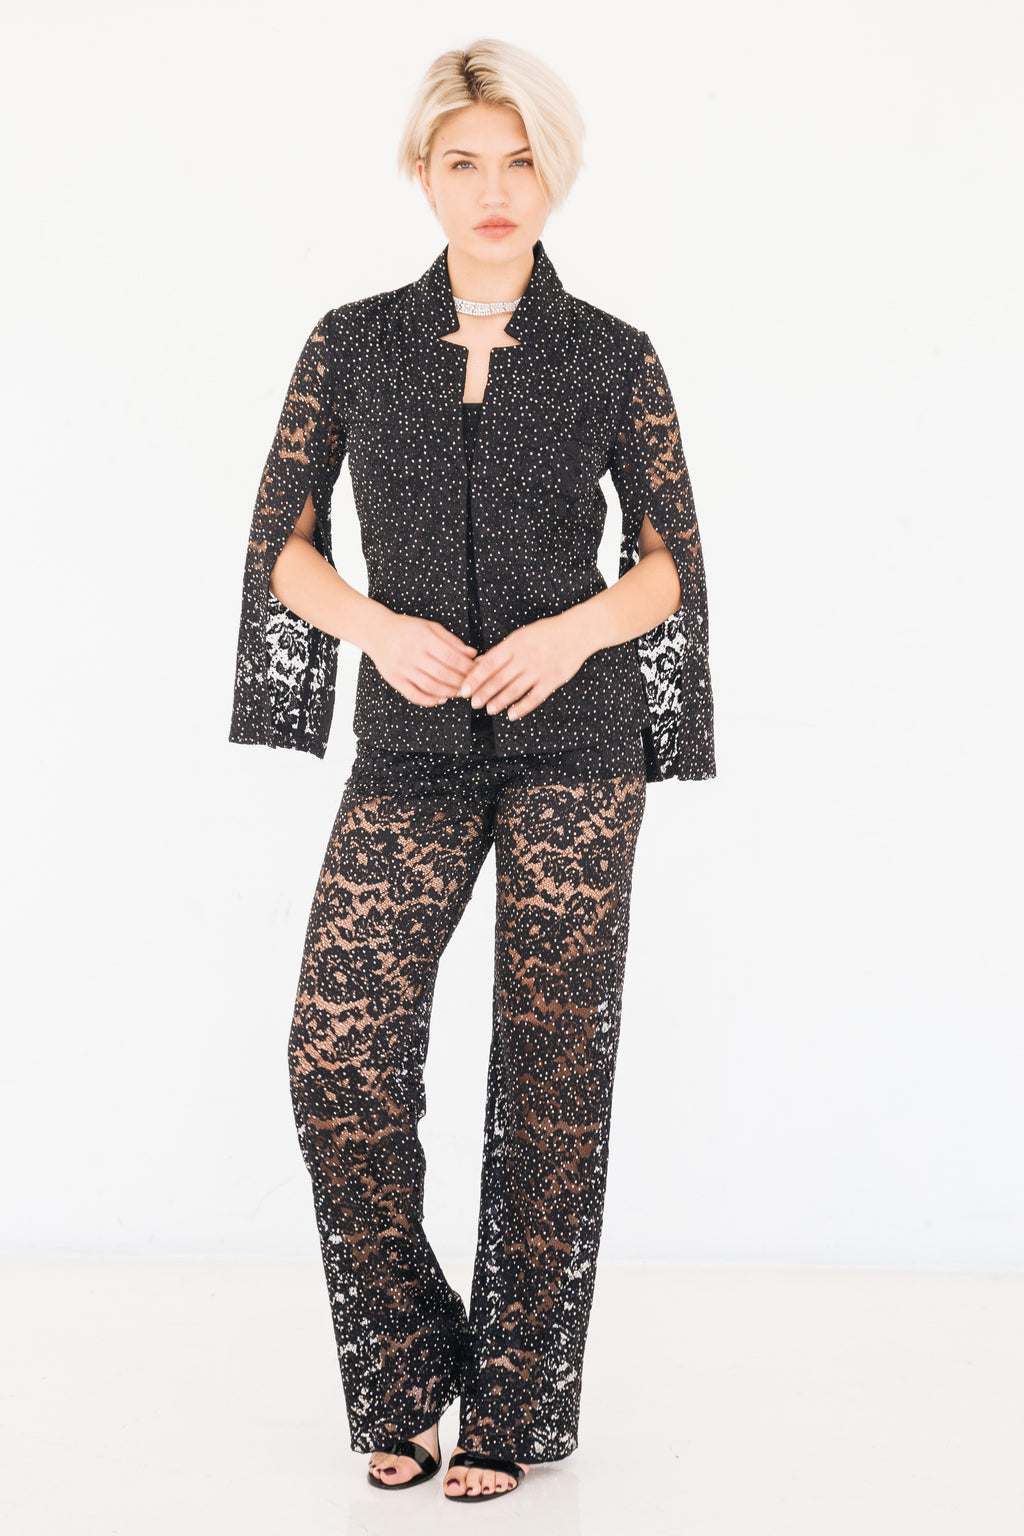 Stardust Rose Lace Pant - W4430802